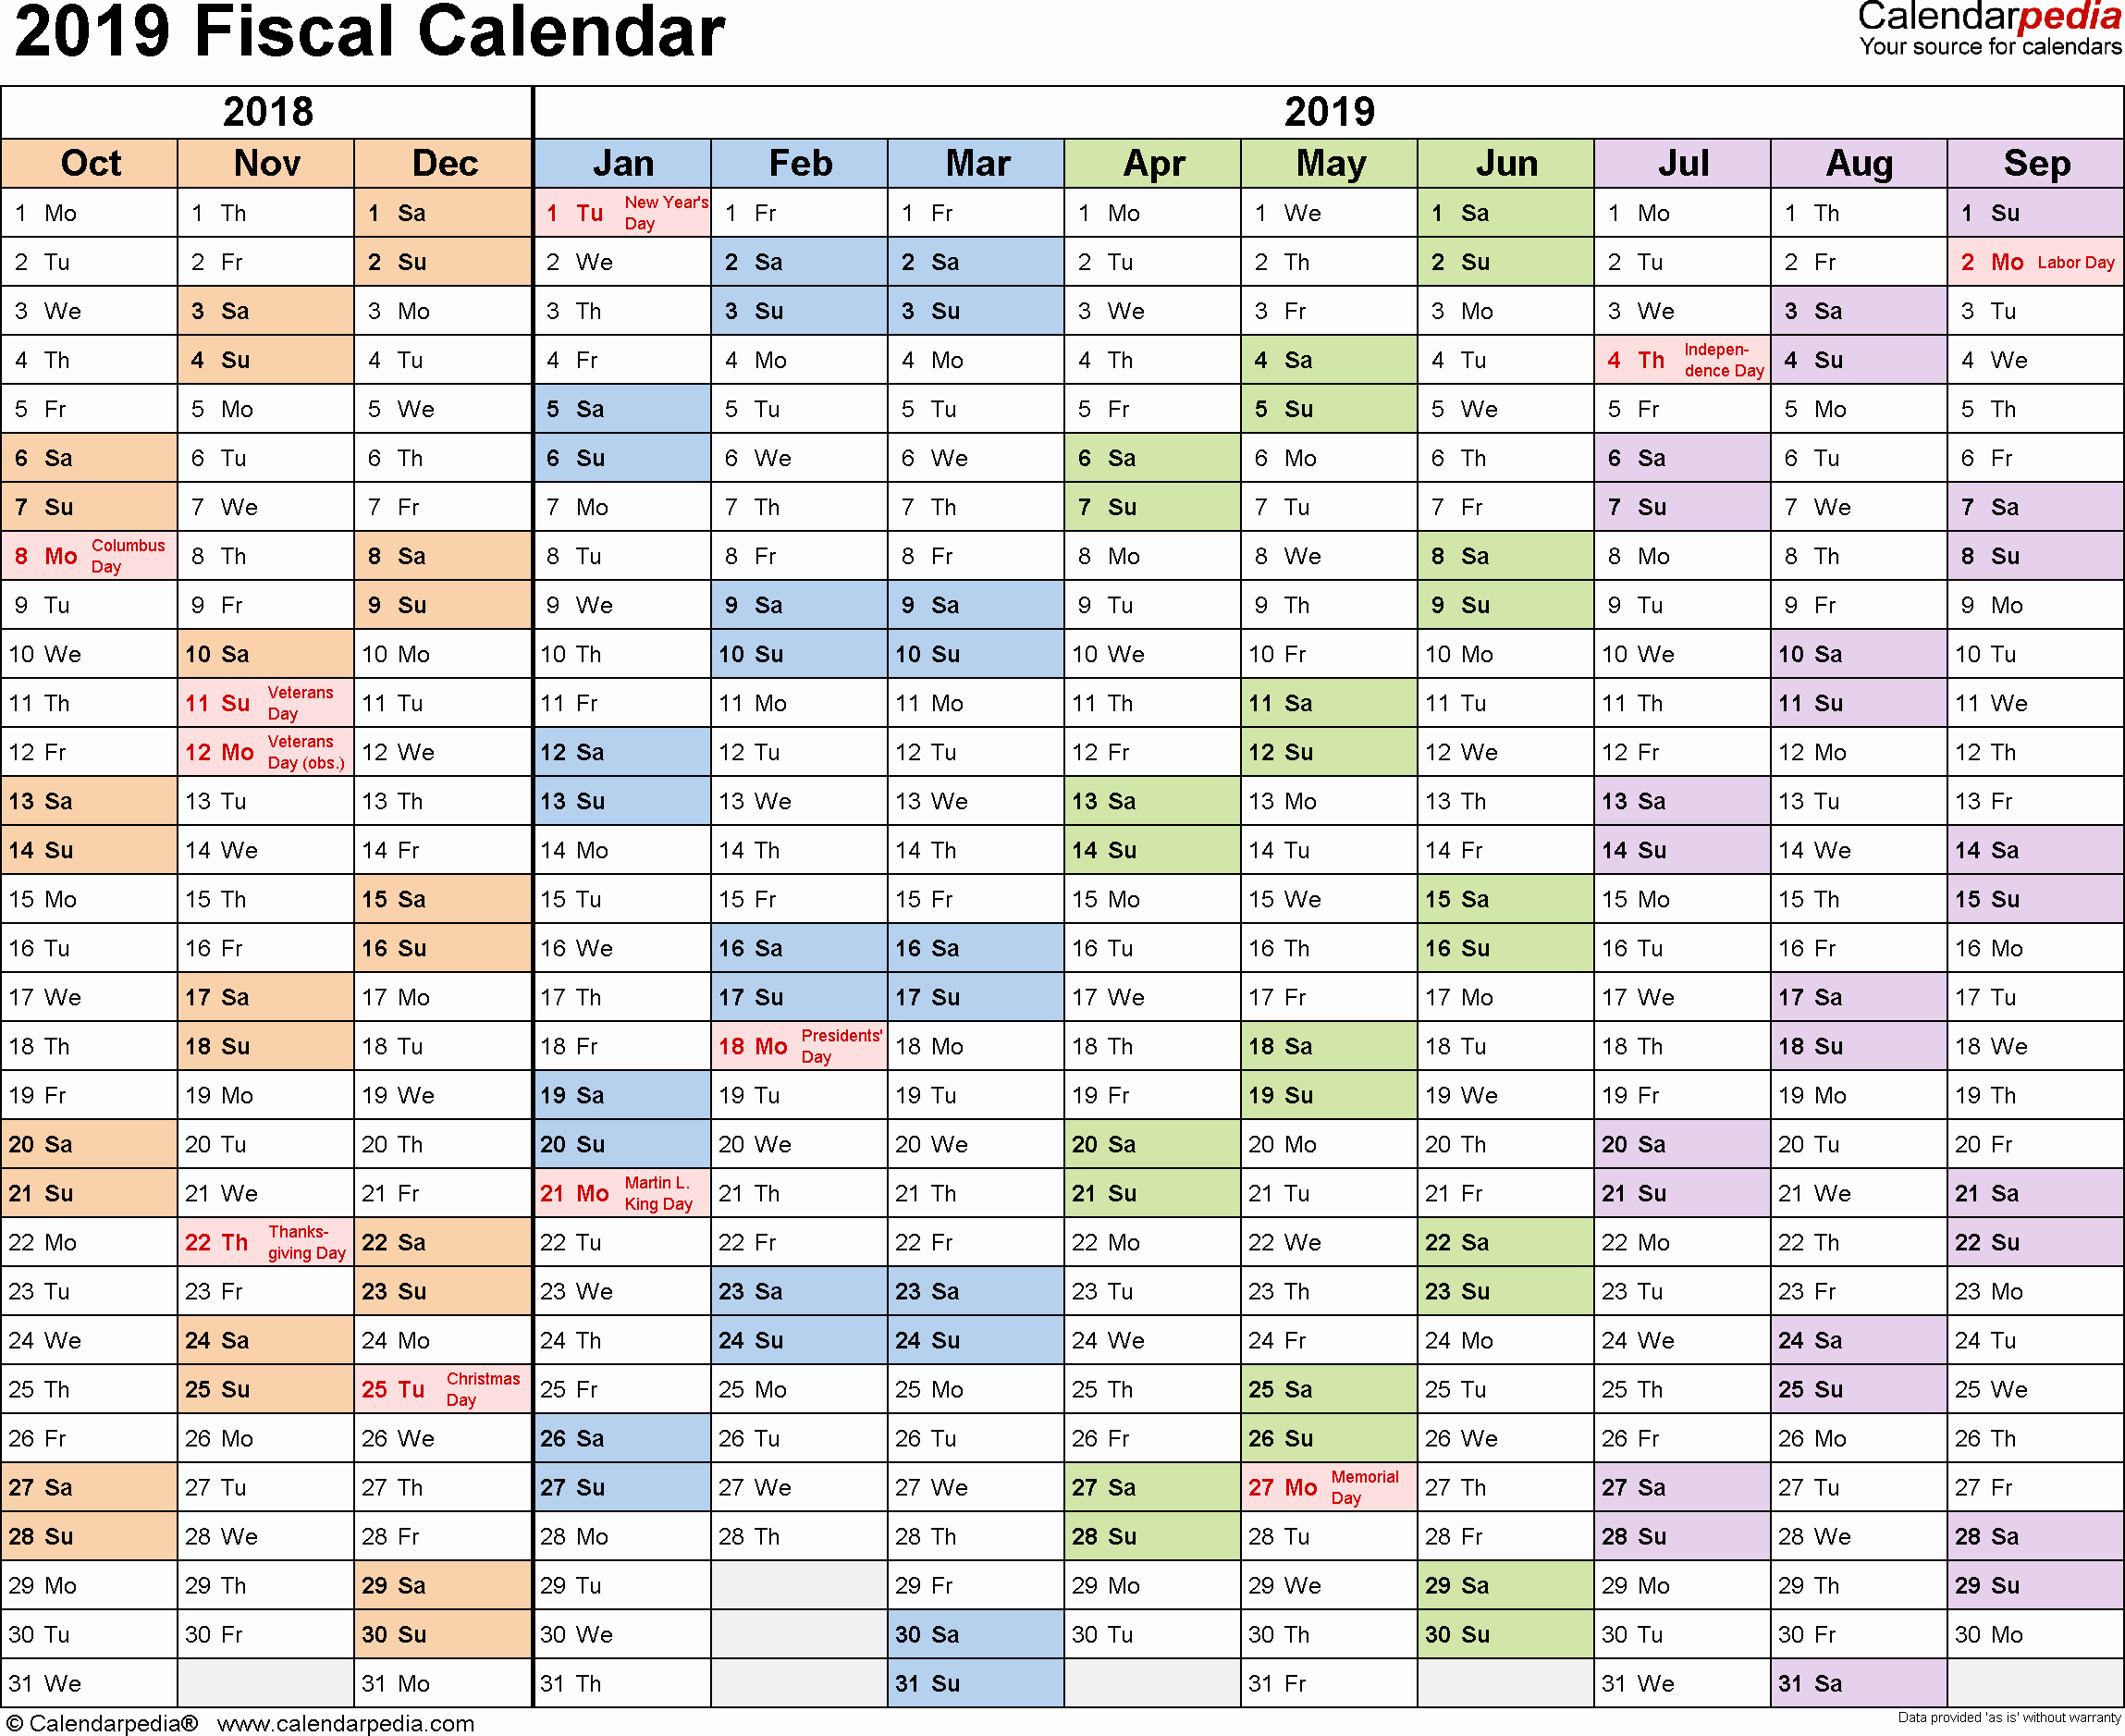 Excel Calendar 2019 Template Beautiful Fiscal Calendars 2019 Free Printable Excel Templates